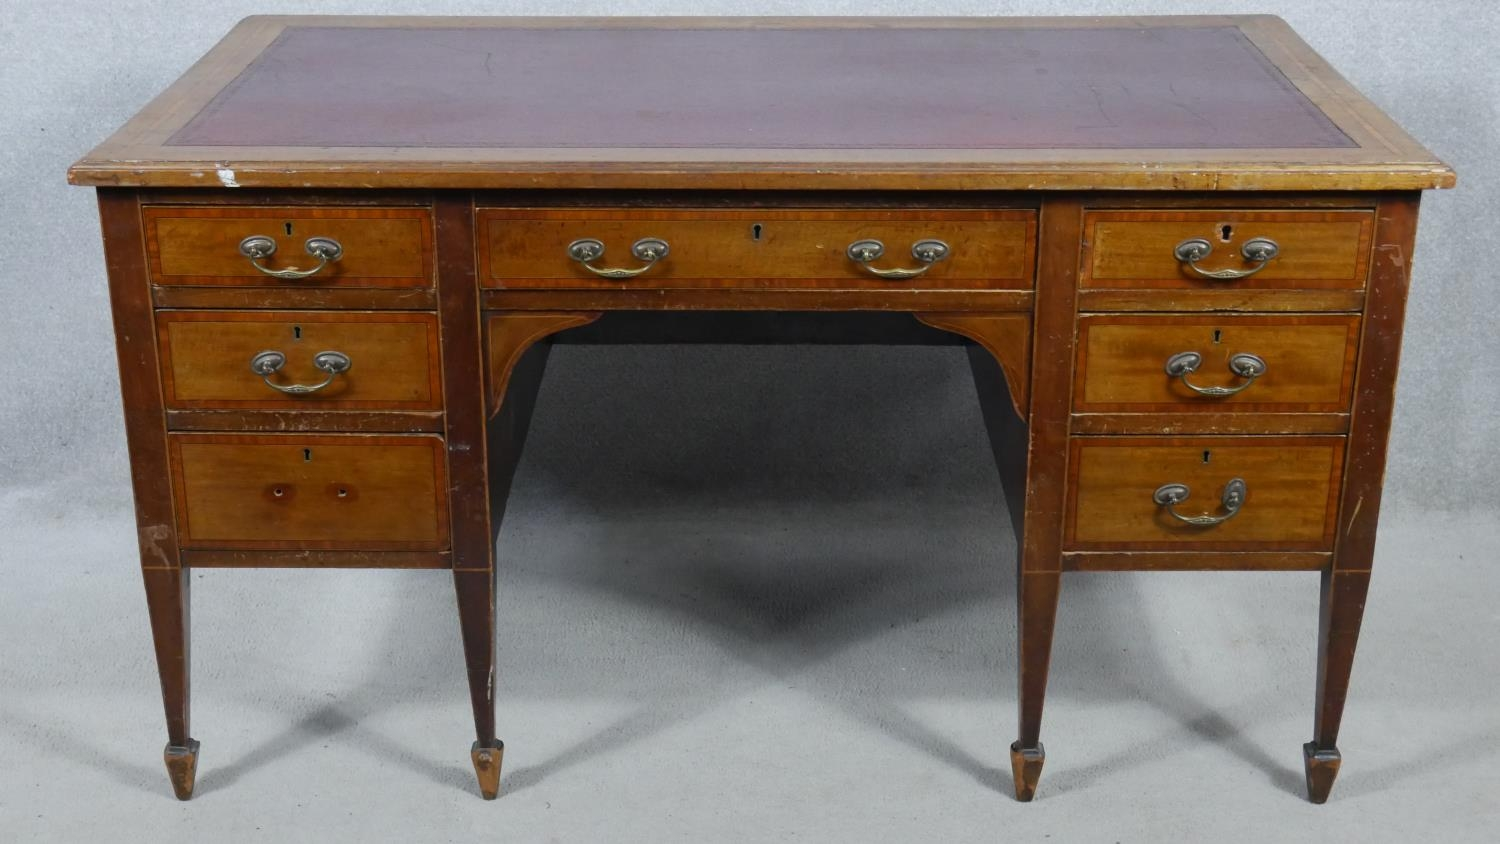 An Edwardian mahogany and crossbanded kneehole desk with inset leather top raised on square tapering